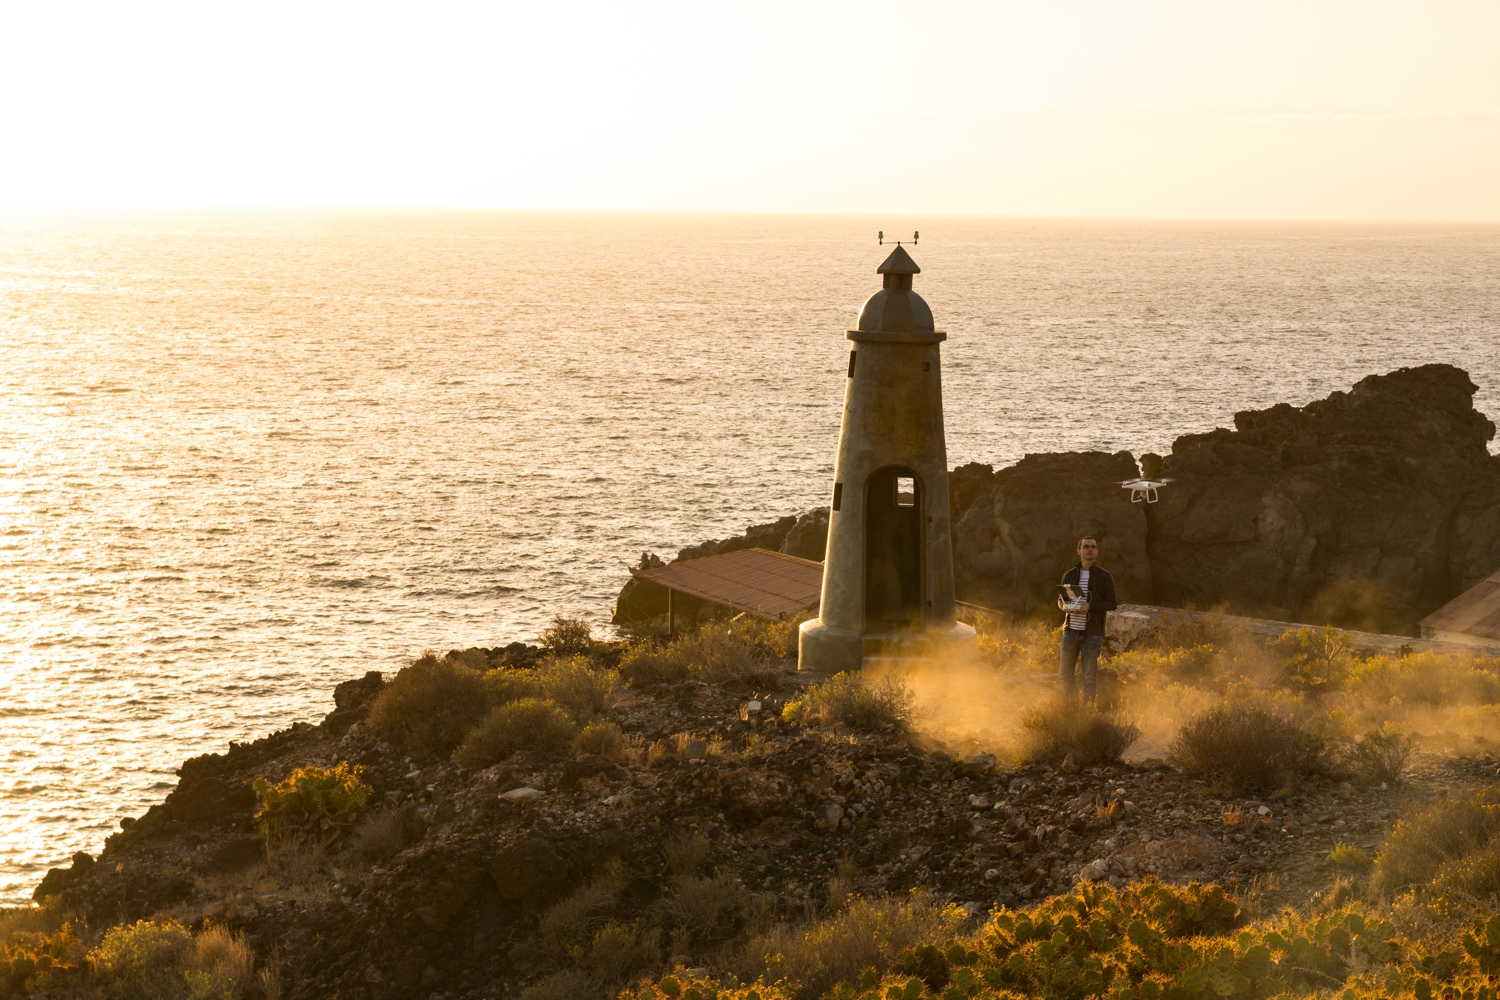 Drone Holiday - Flying a drone next to Lighthouse at sunset on holiday in Tenerife, Spain